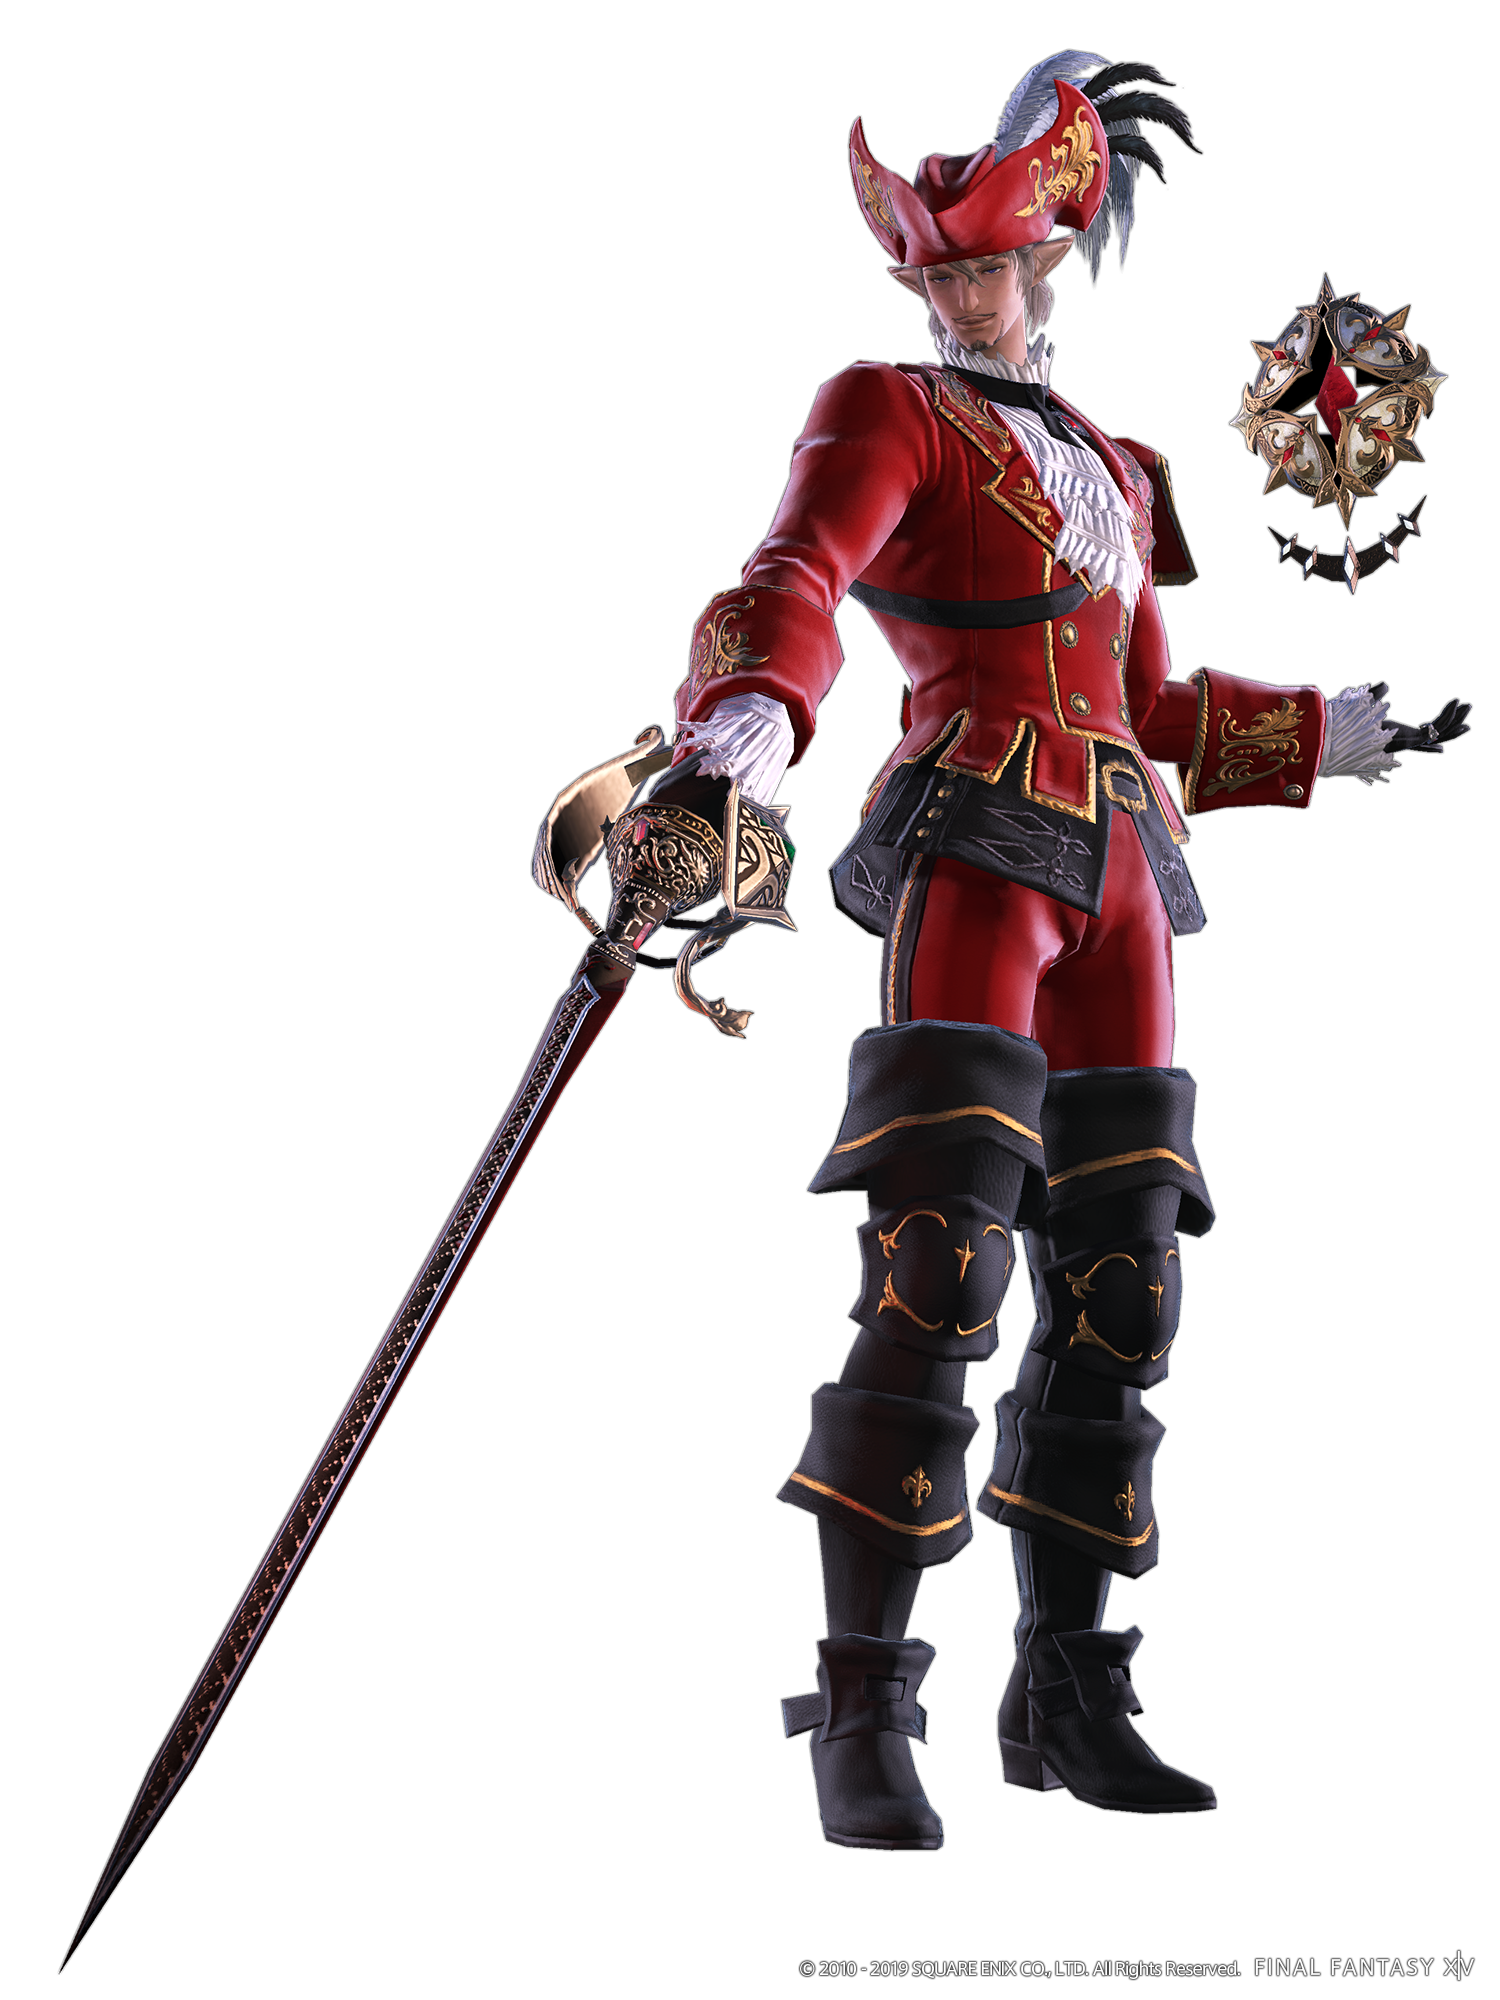 Final Fantasy XIV: Shadowbringers Hands-On with Red Mage